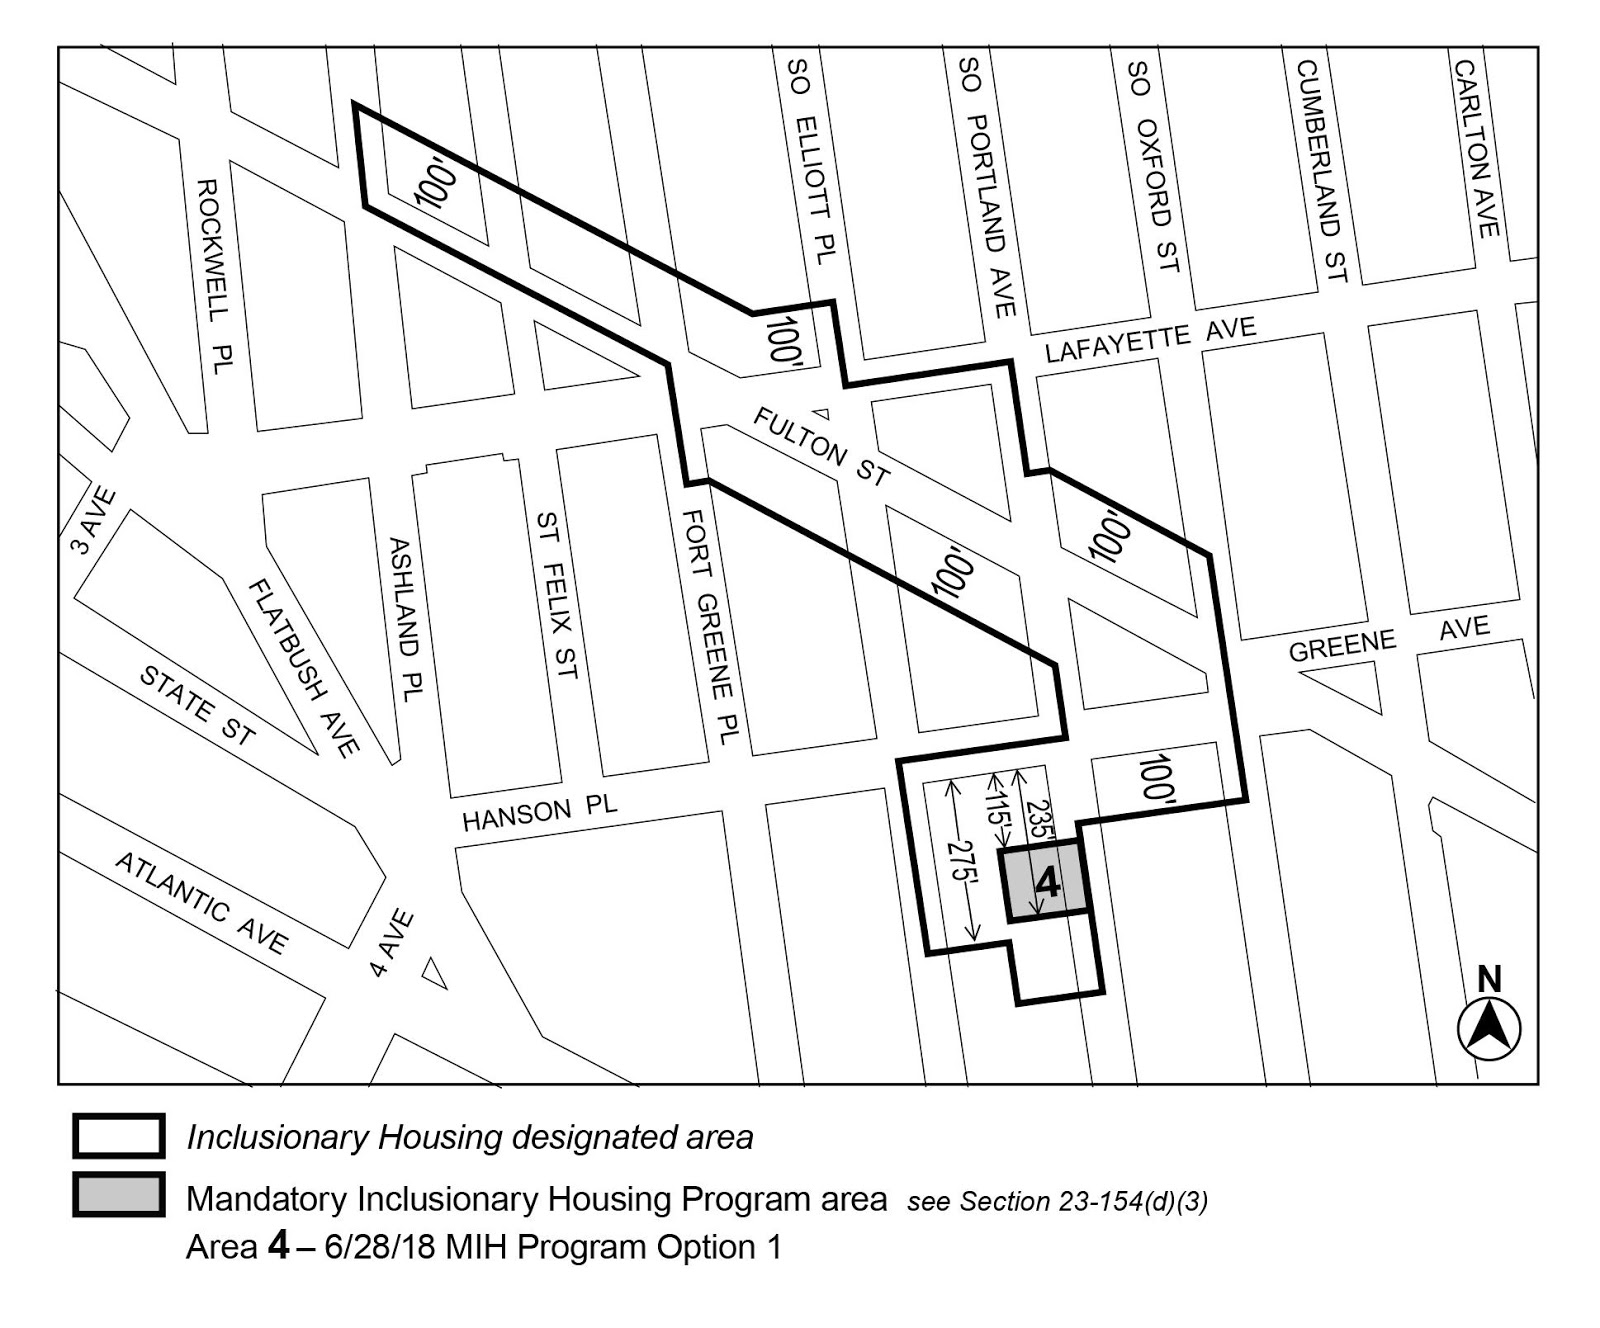 Zoning Resolutions F-Inclusionary Housing Designated Areas and Mandatory Inclusionary Housing Areas_2.41